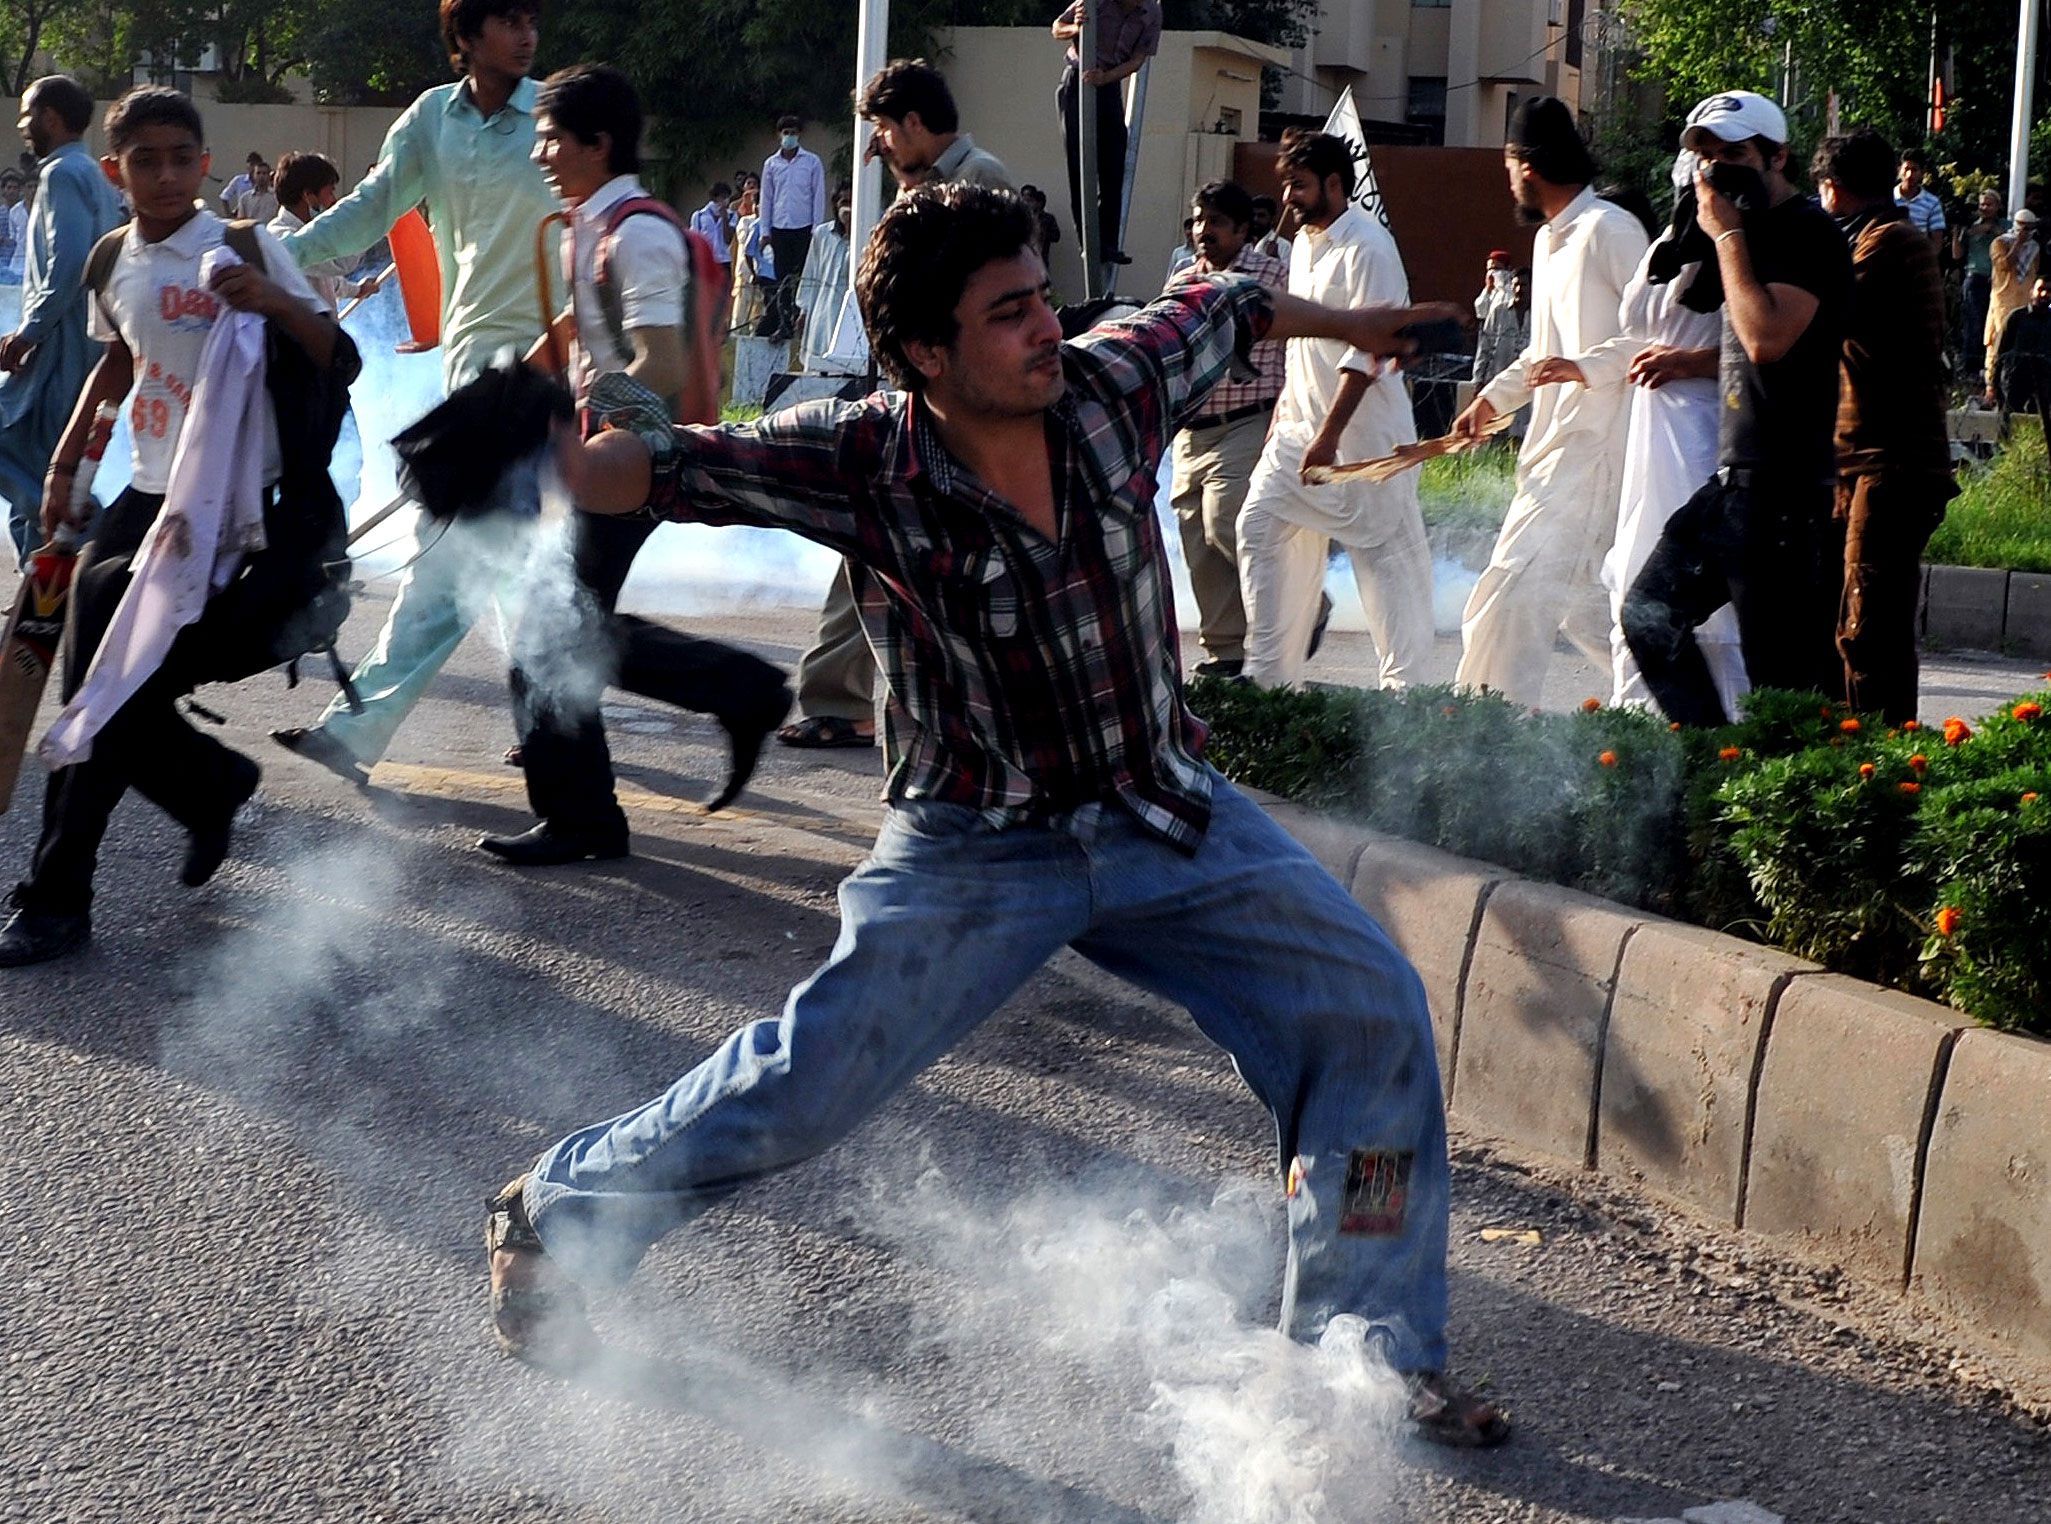 Reports said police and students were injured in the protests over the video entitled 'Innocence of Muslims' [AFP]